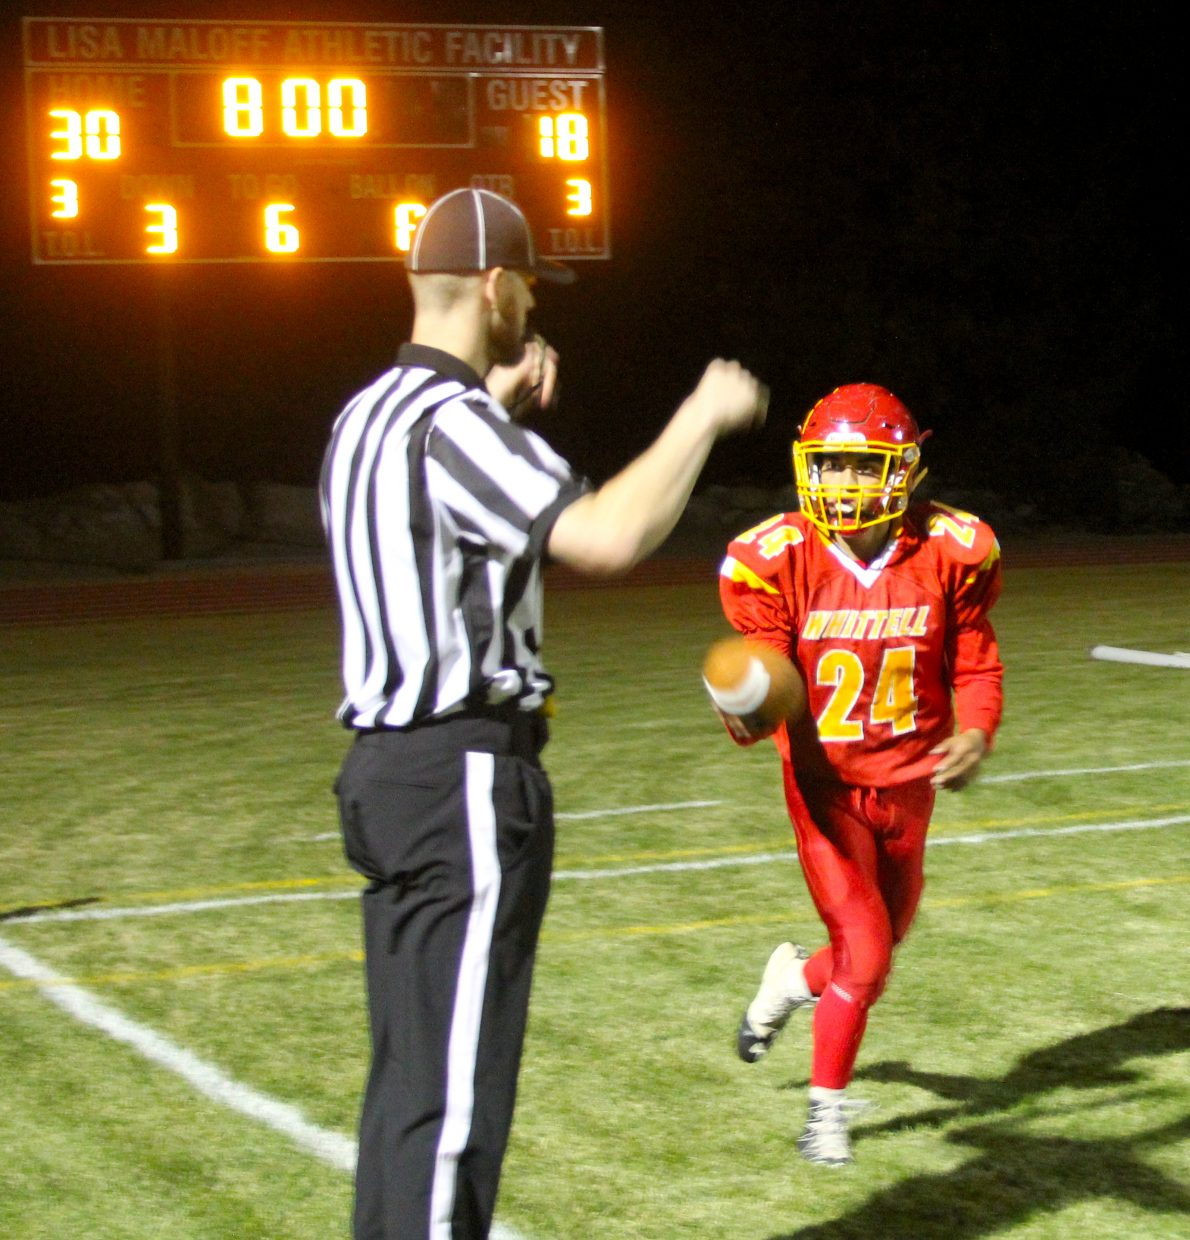 Isaiah Womack tosses the ball to a referee after scoring a third quarter touchdown.